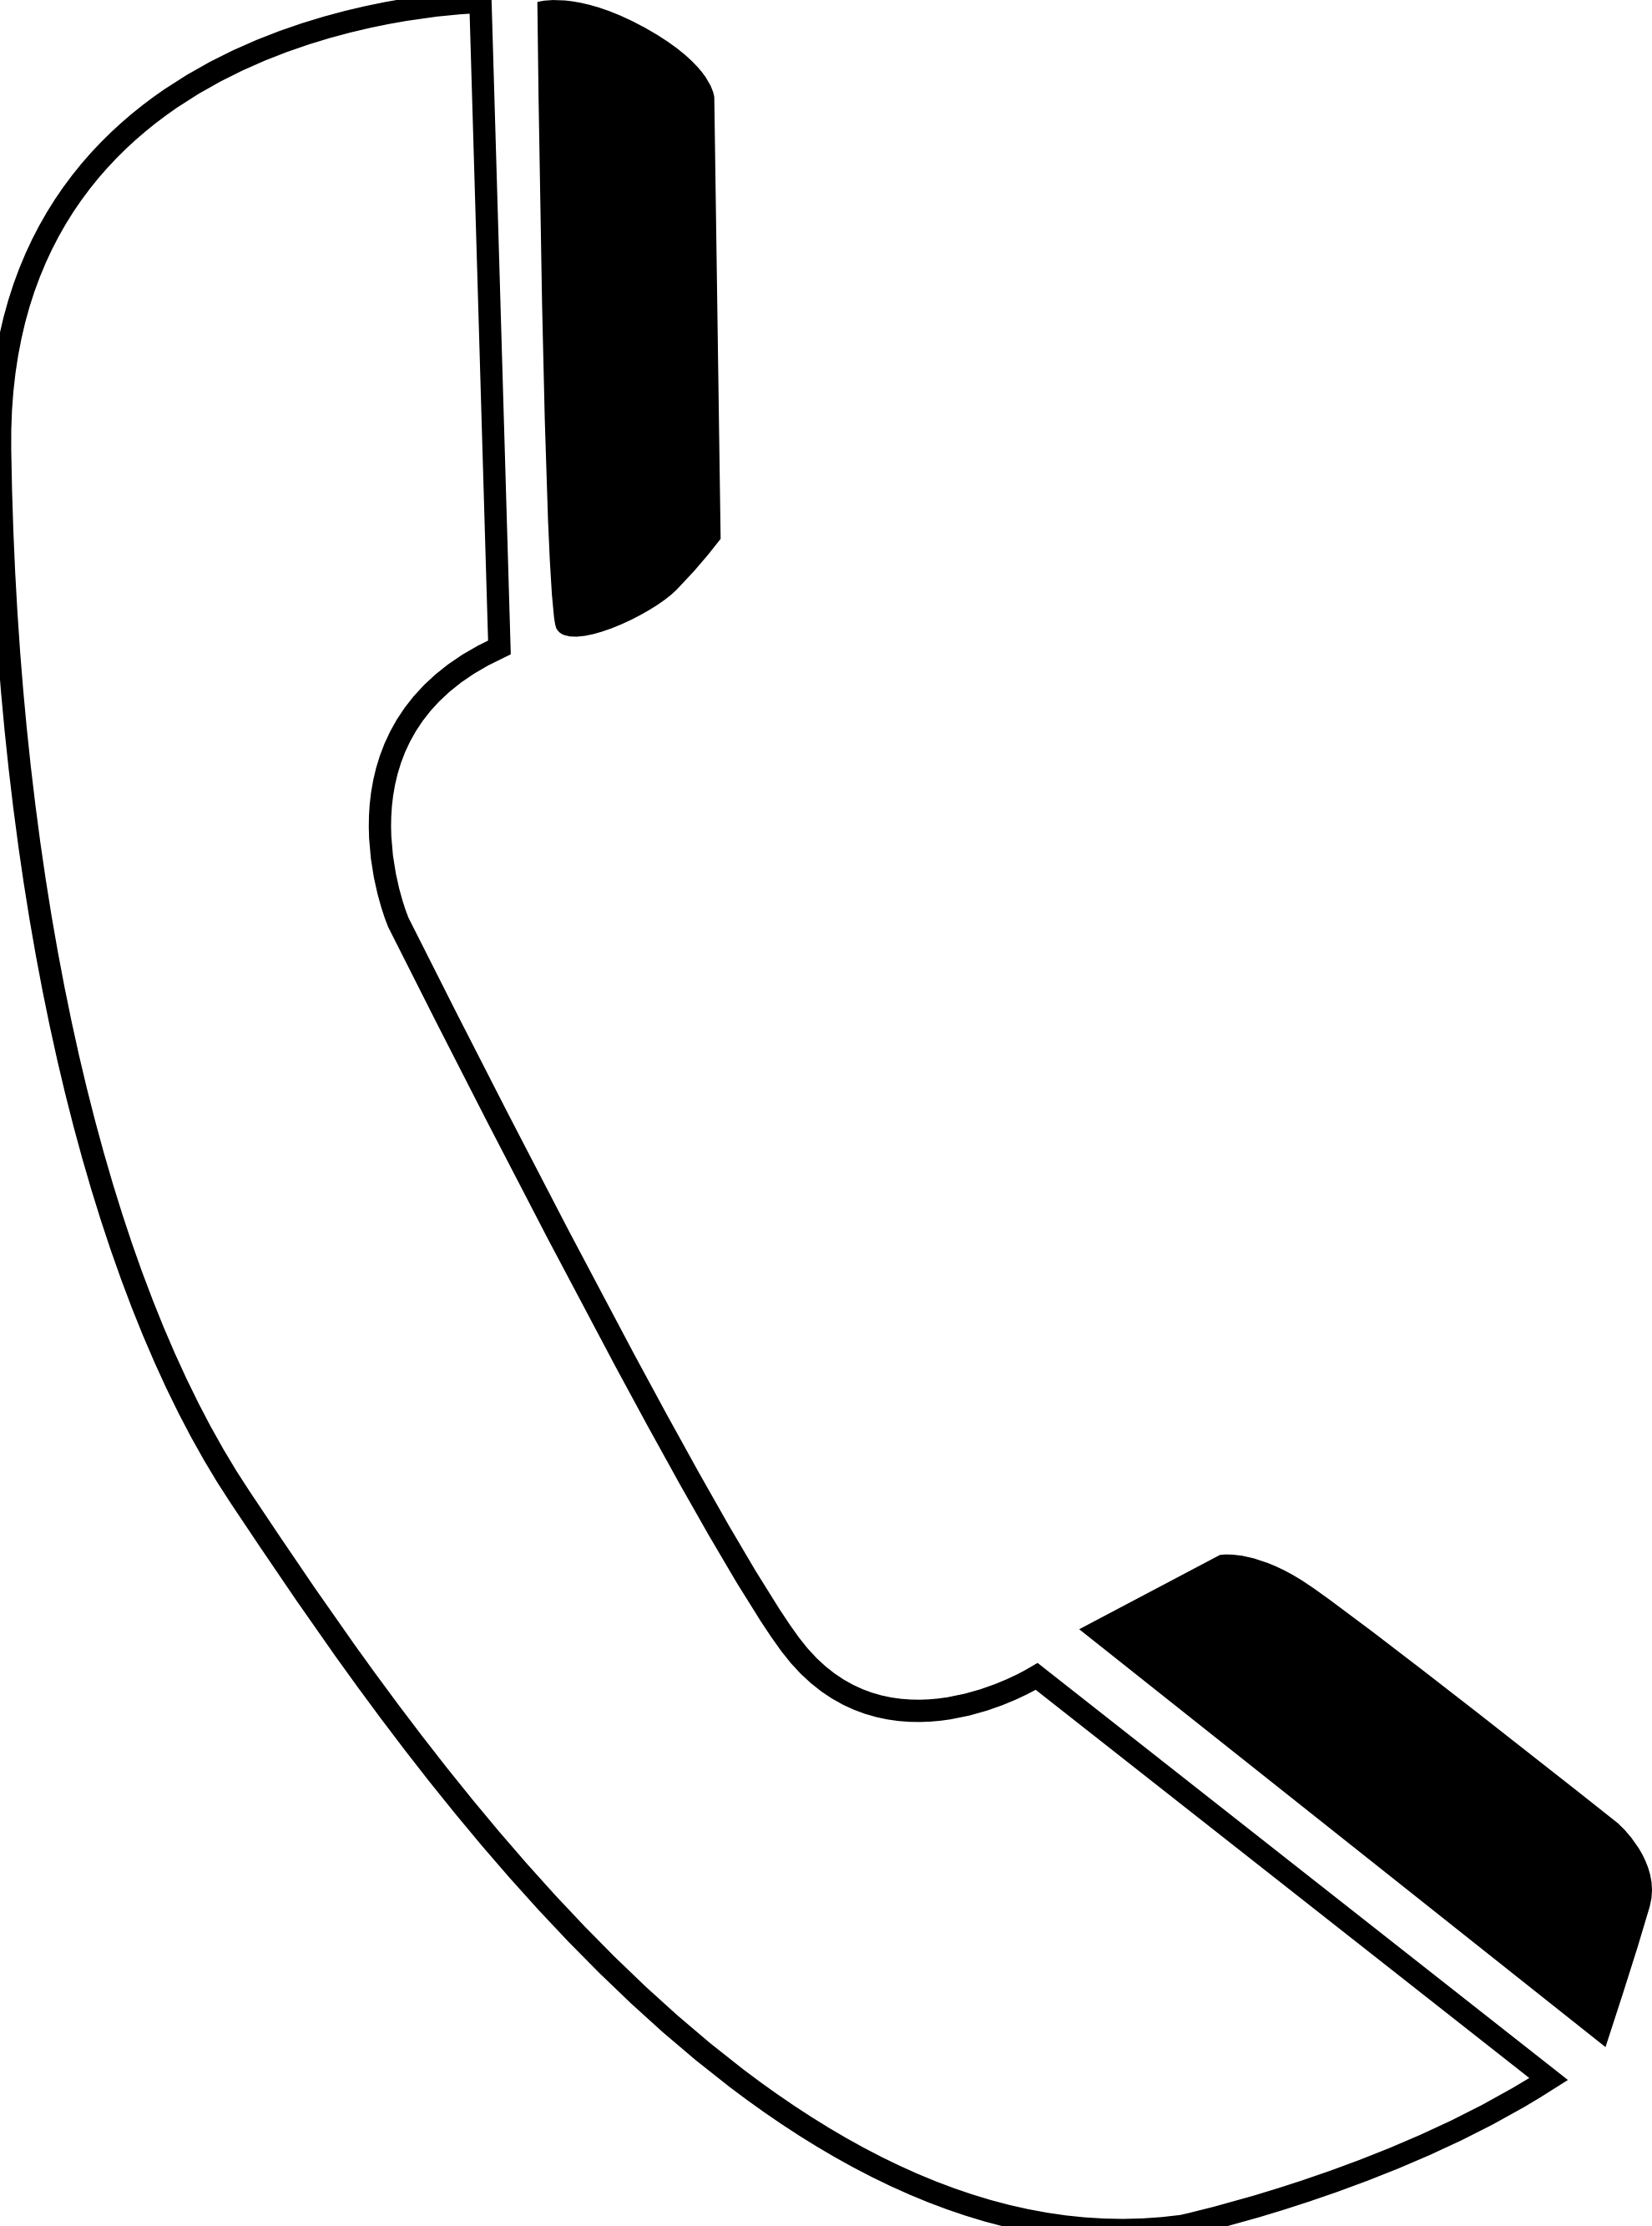 Telephone clipart reciever. Phone png images free